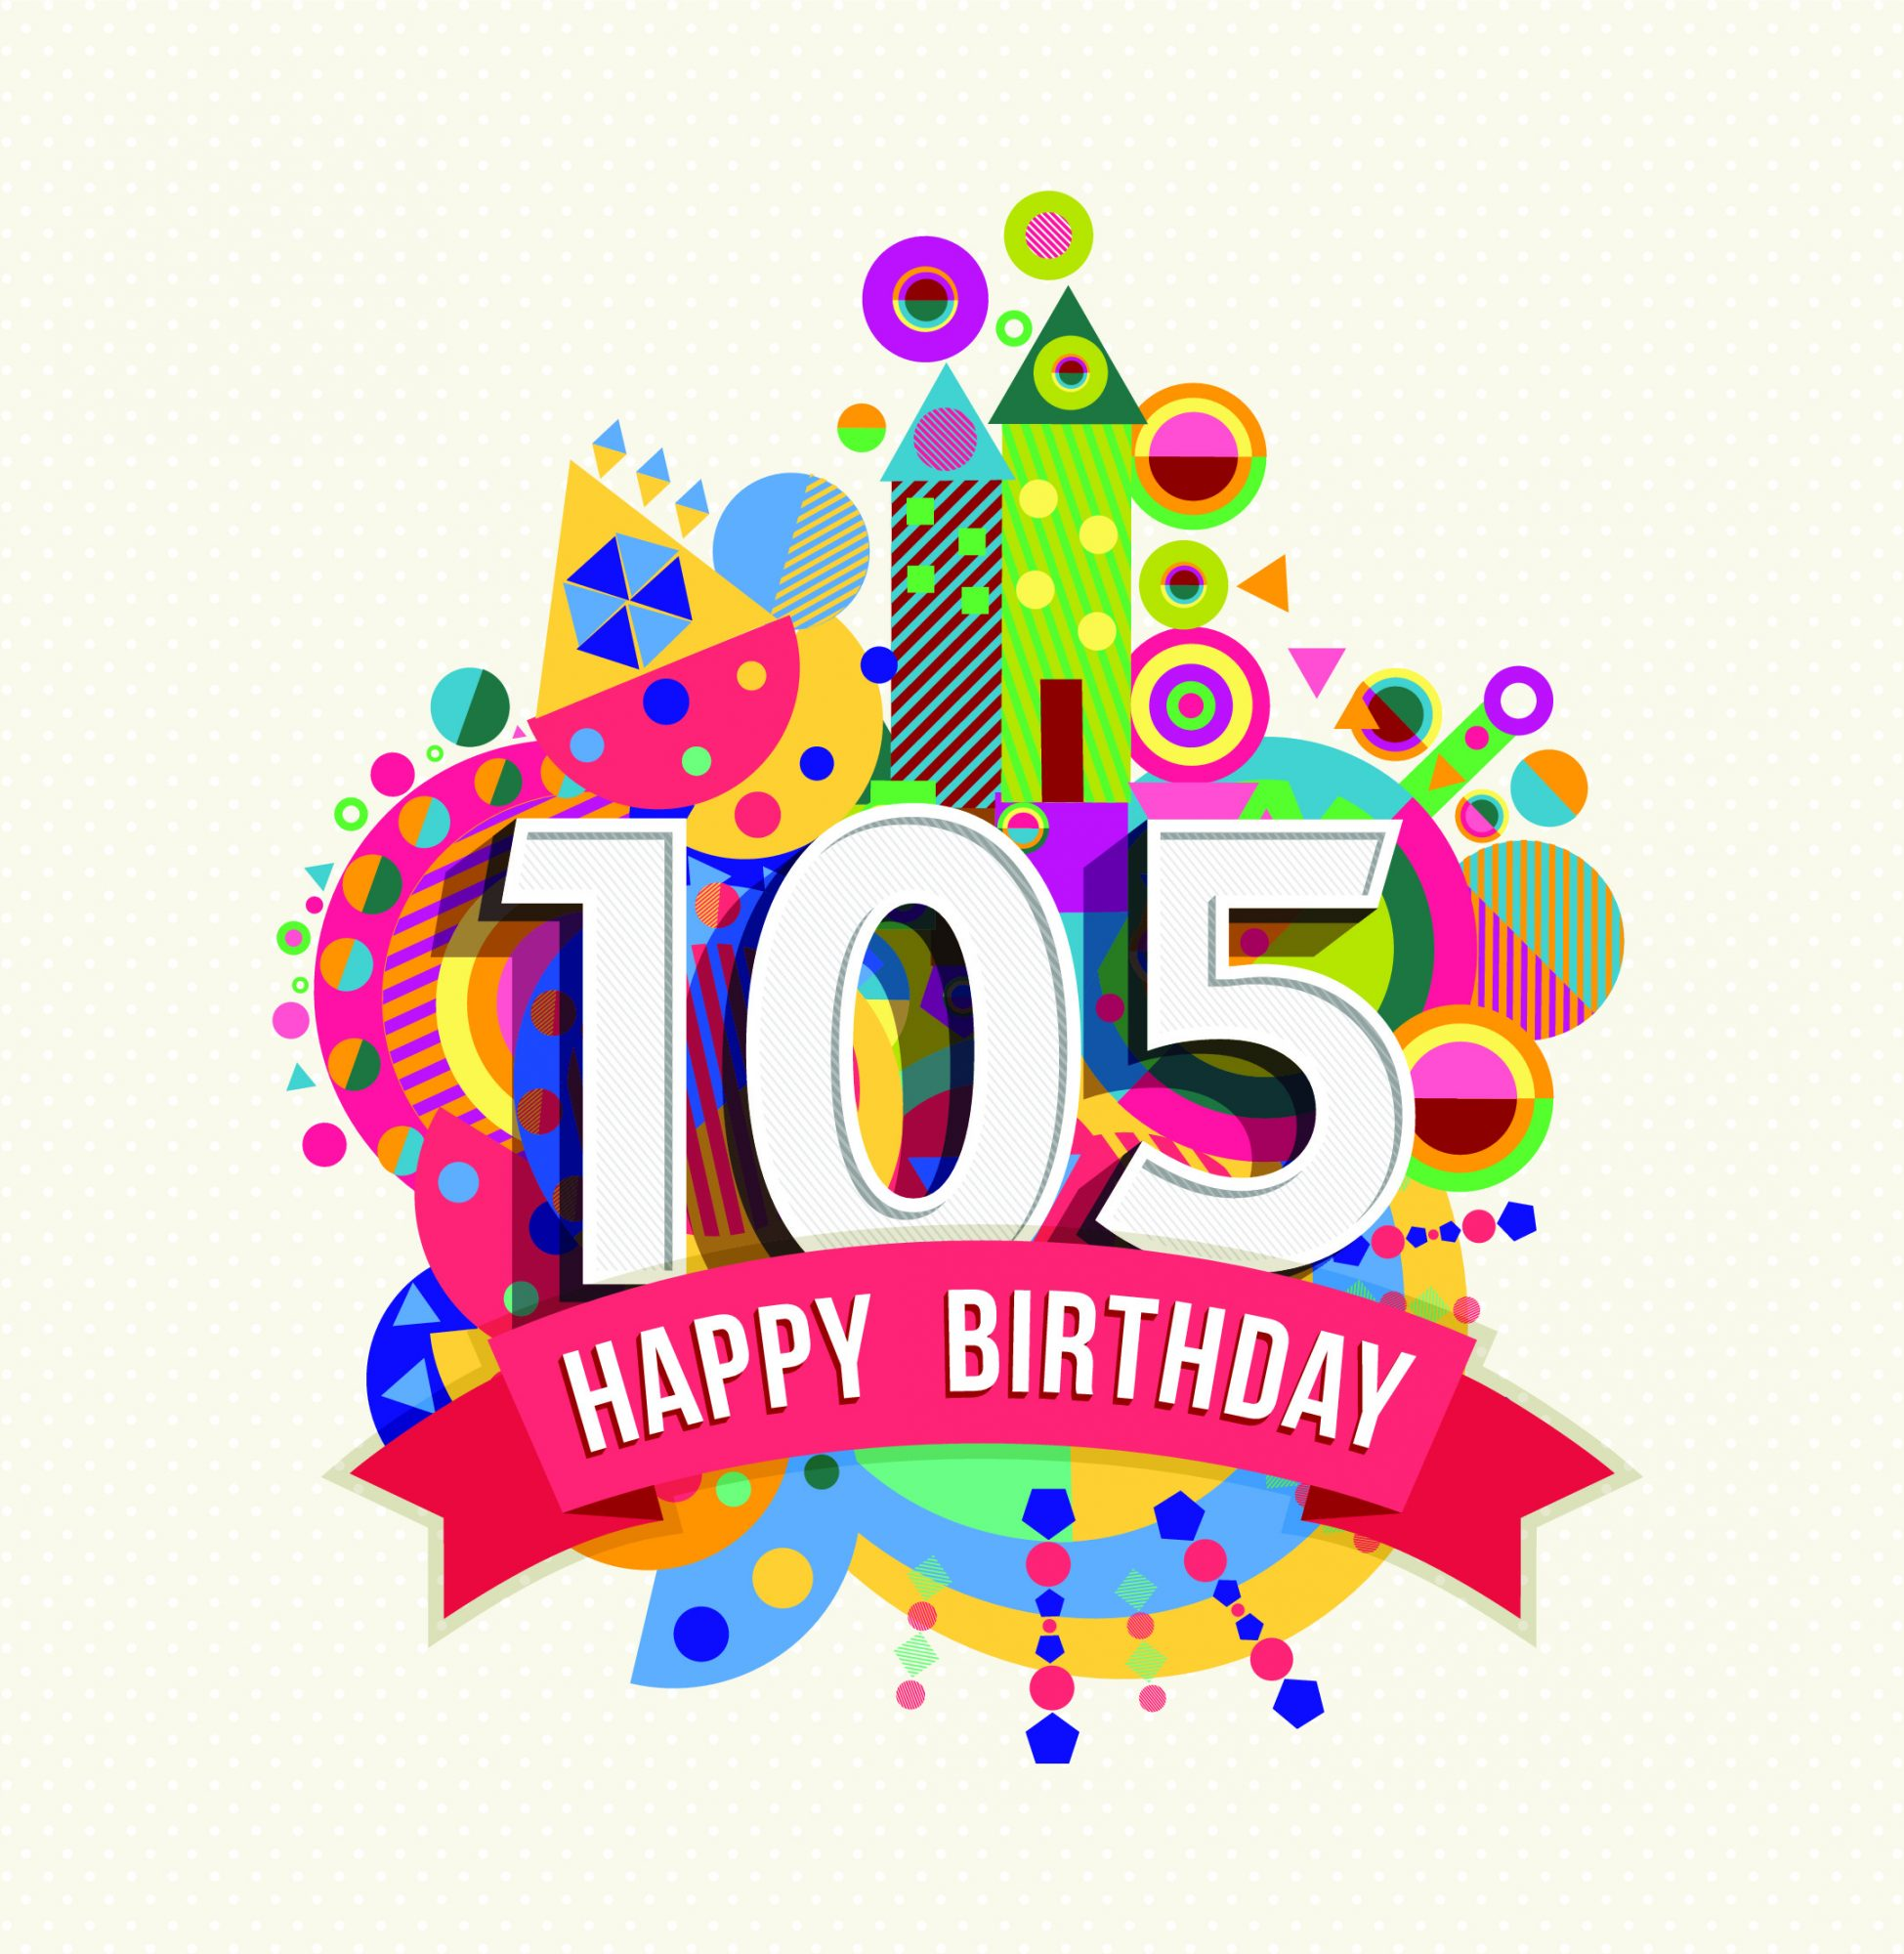 105th Birthday Card